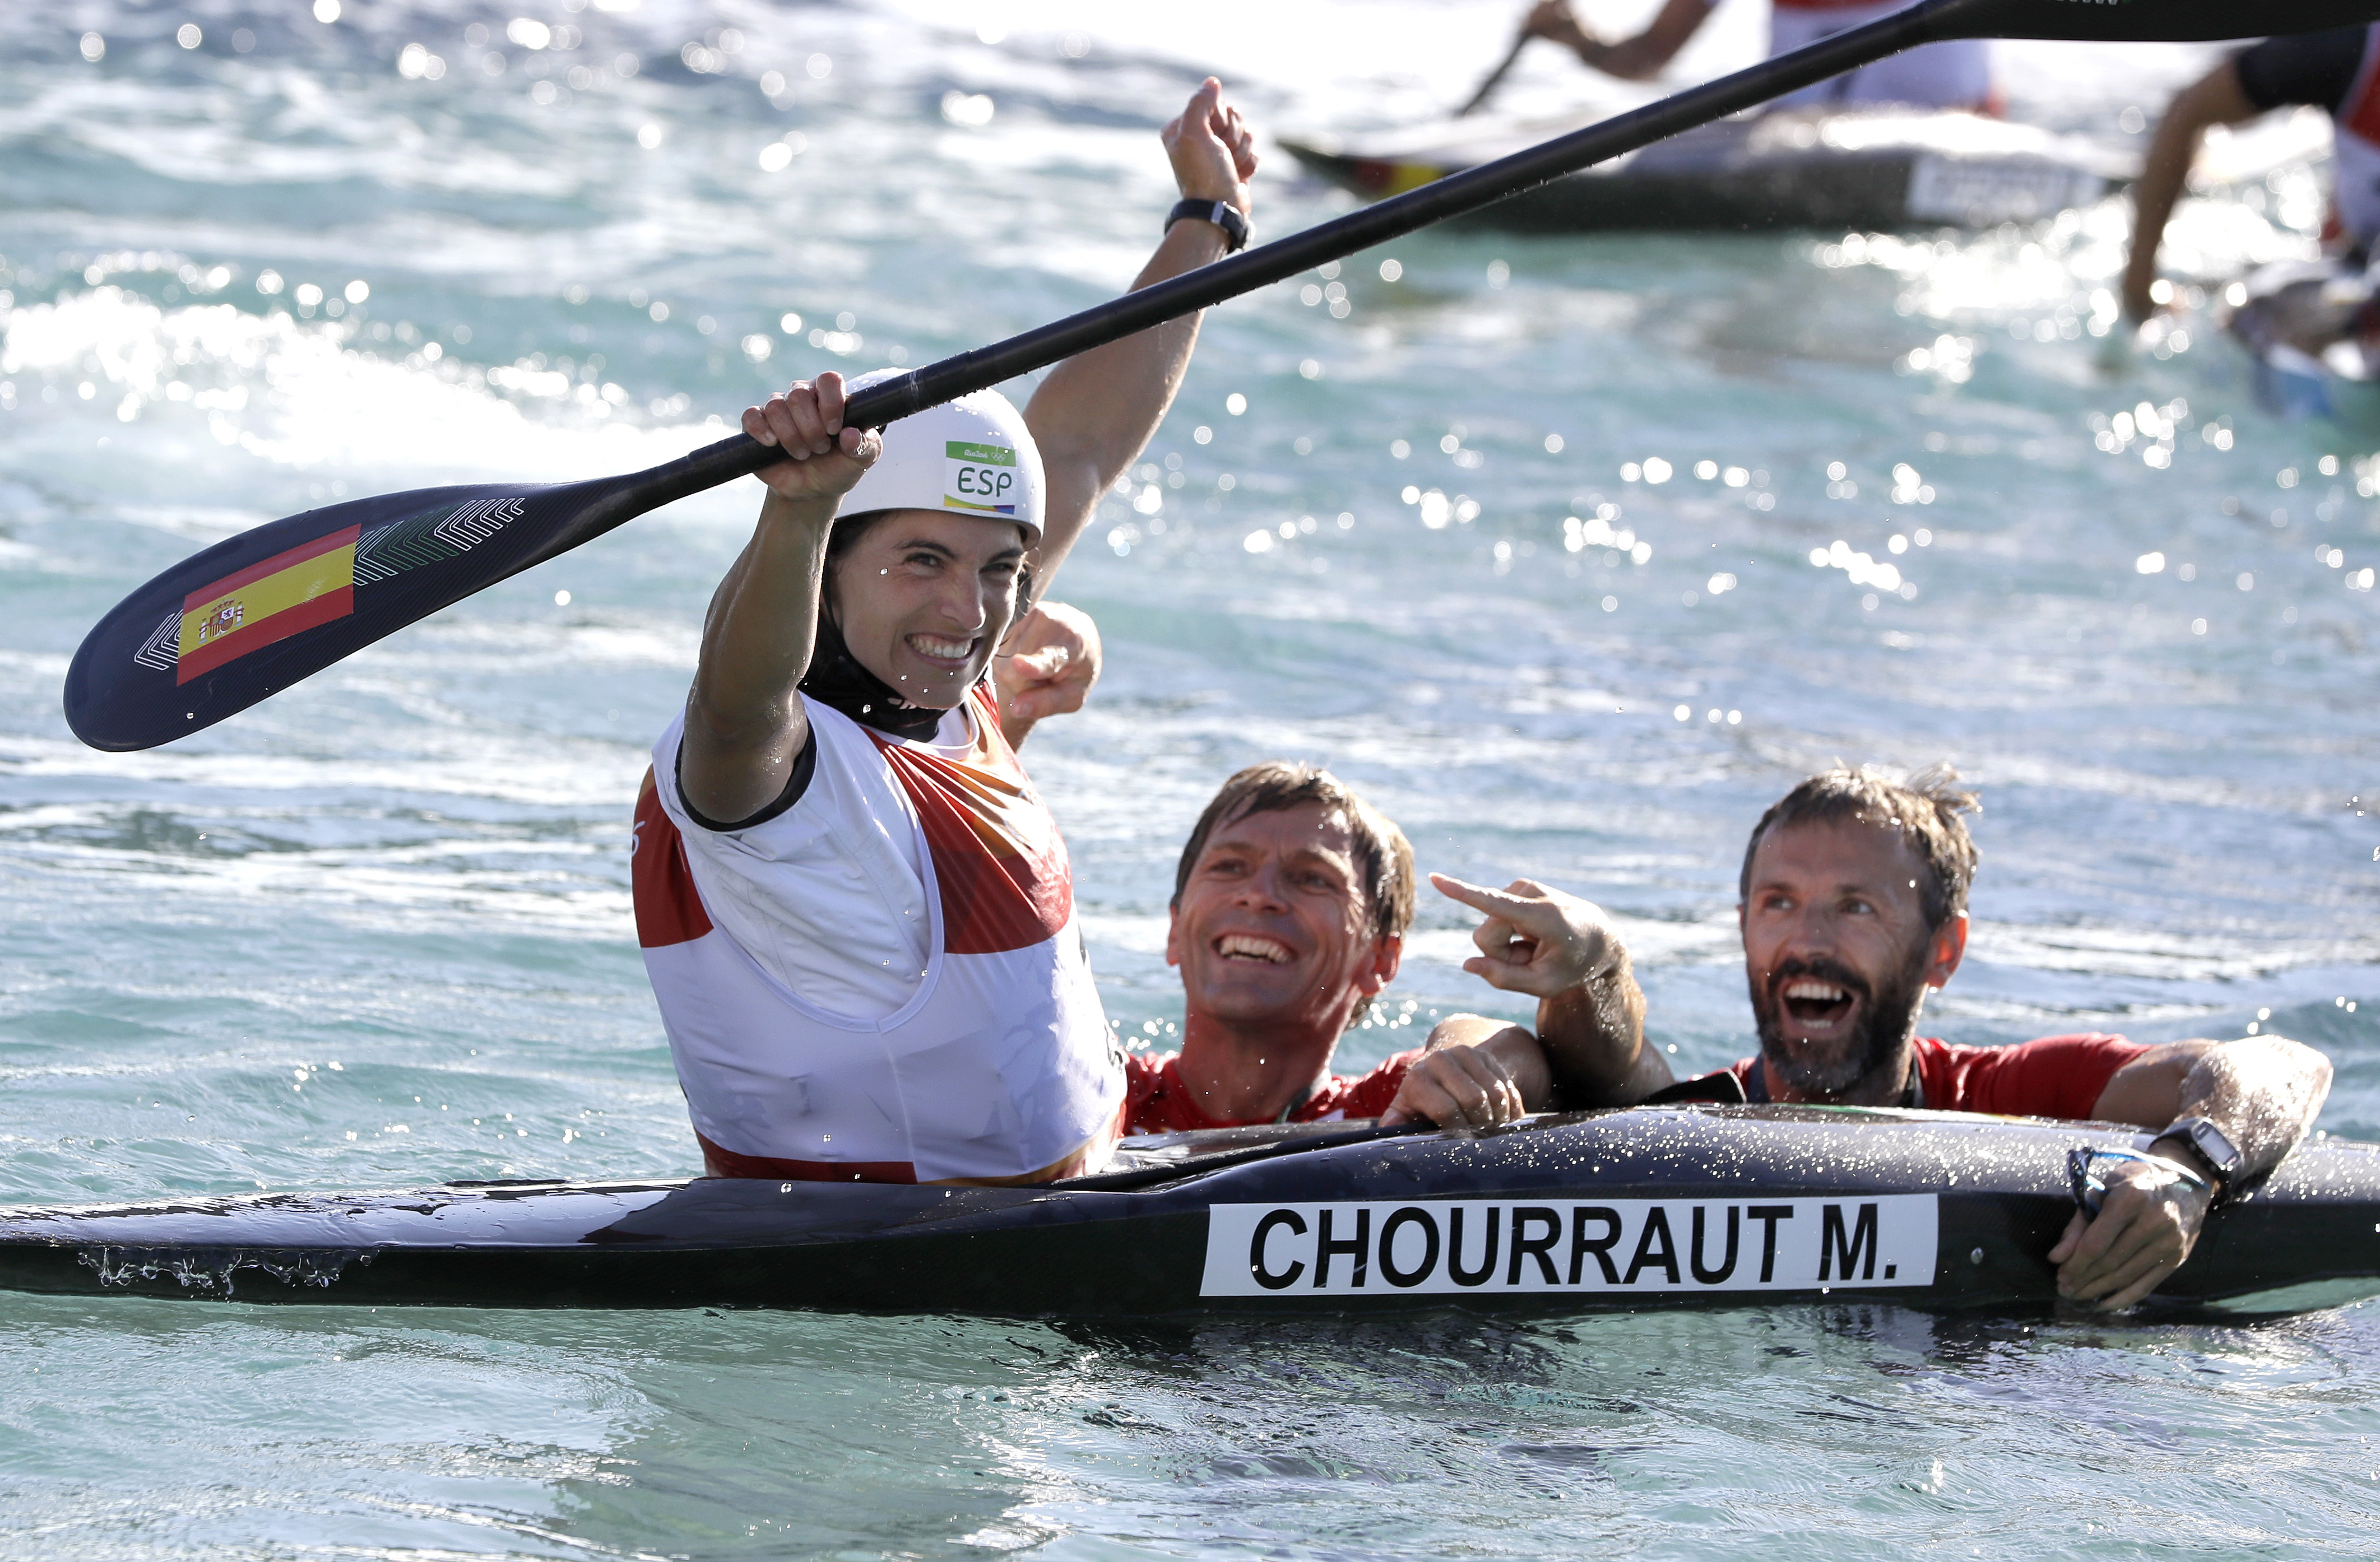 Gold medal winner Maialen Chourraut of Spain celebrates with team members after she finishes the kayak K1 women's final of the canoe slalom at the 2016 Summer Olympics in Rio de Janeiro, Brazil, Thursday, Aug. 11, 2016. (AP Photo/Kirsty Wigglesworth)